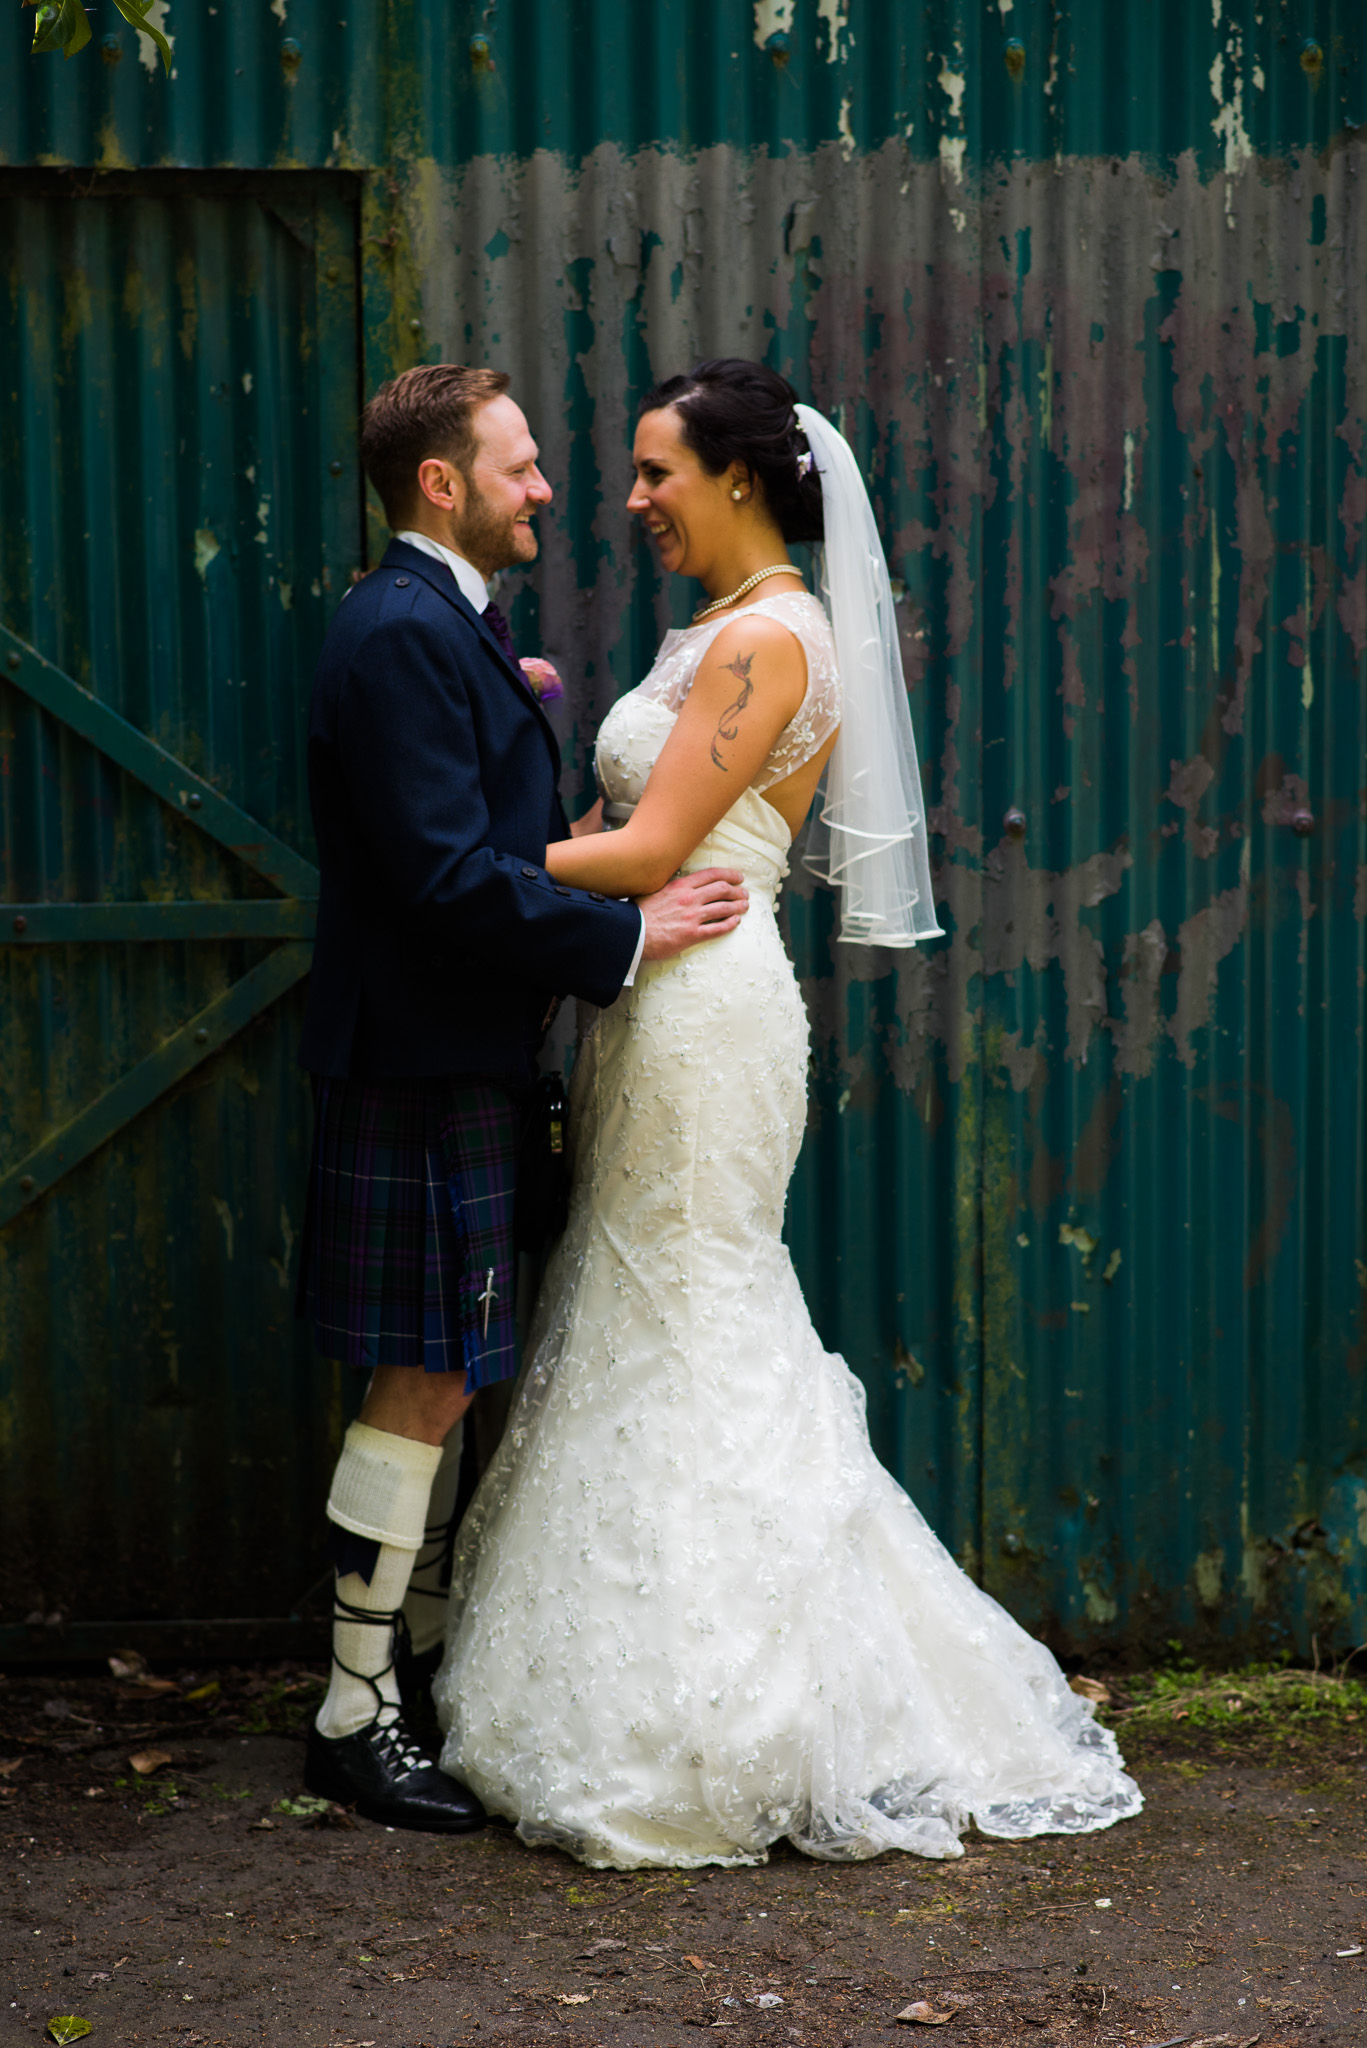 Glasgow Wedding at Pollokshields Burgh Hall